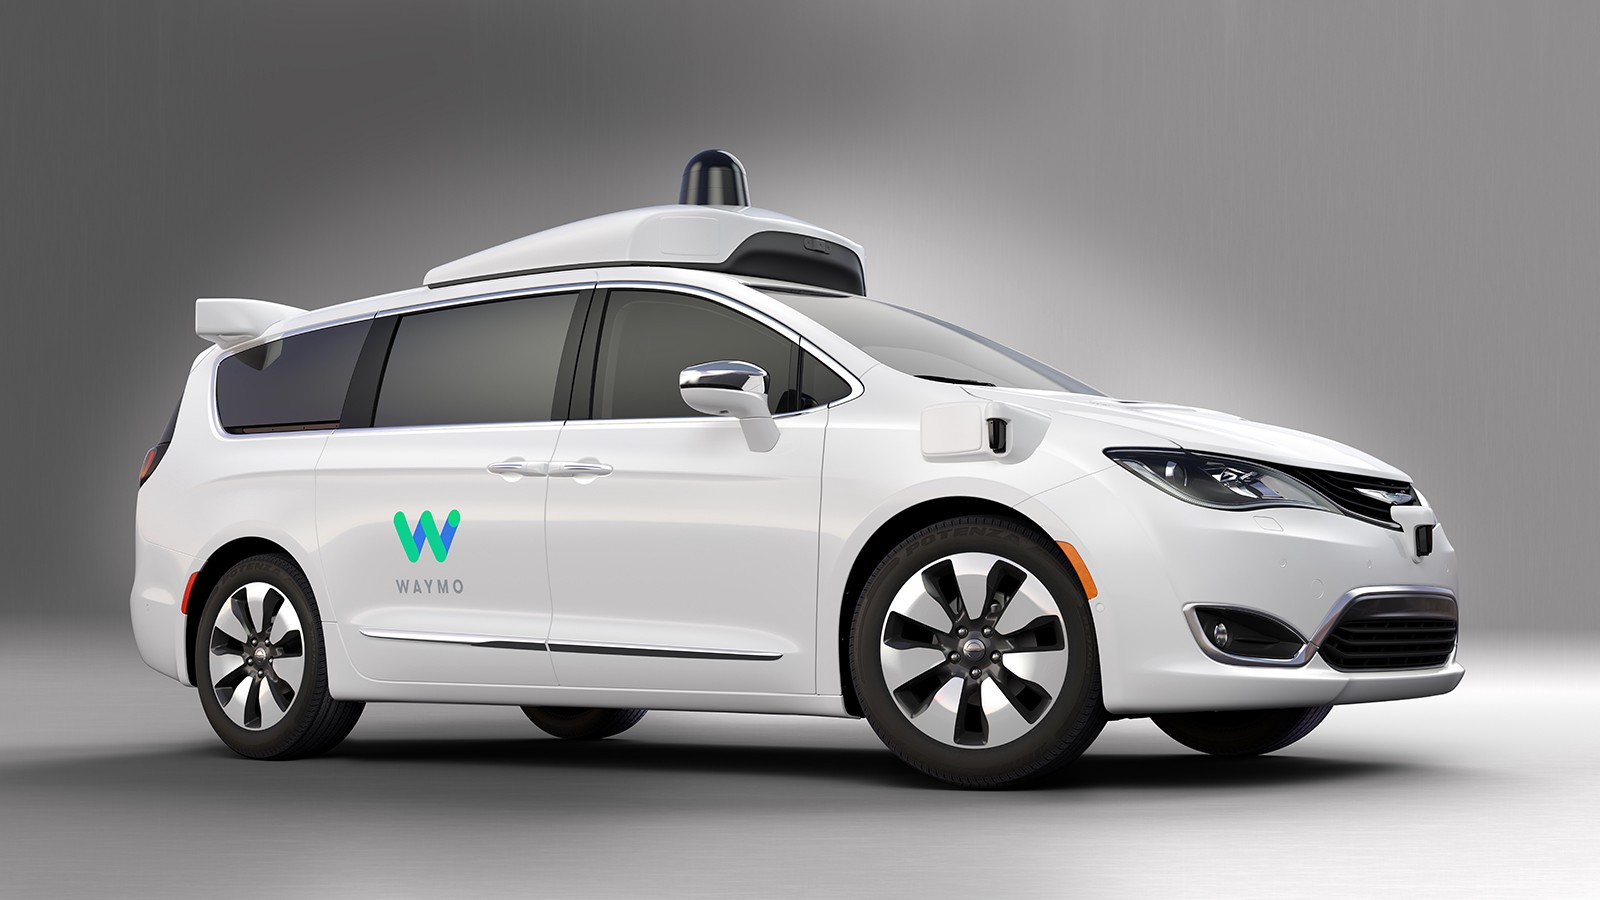 Google Teams Up With Lyft to Test Autonomous Cars | AutoCodes.com